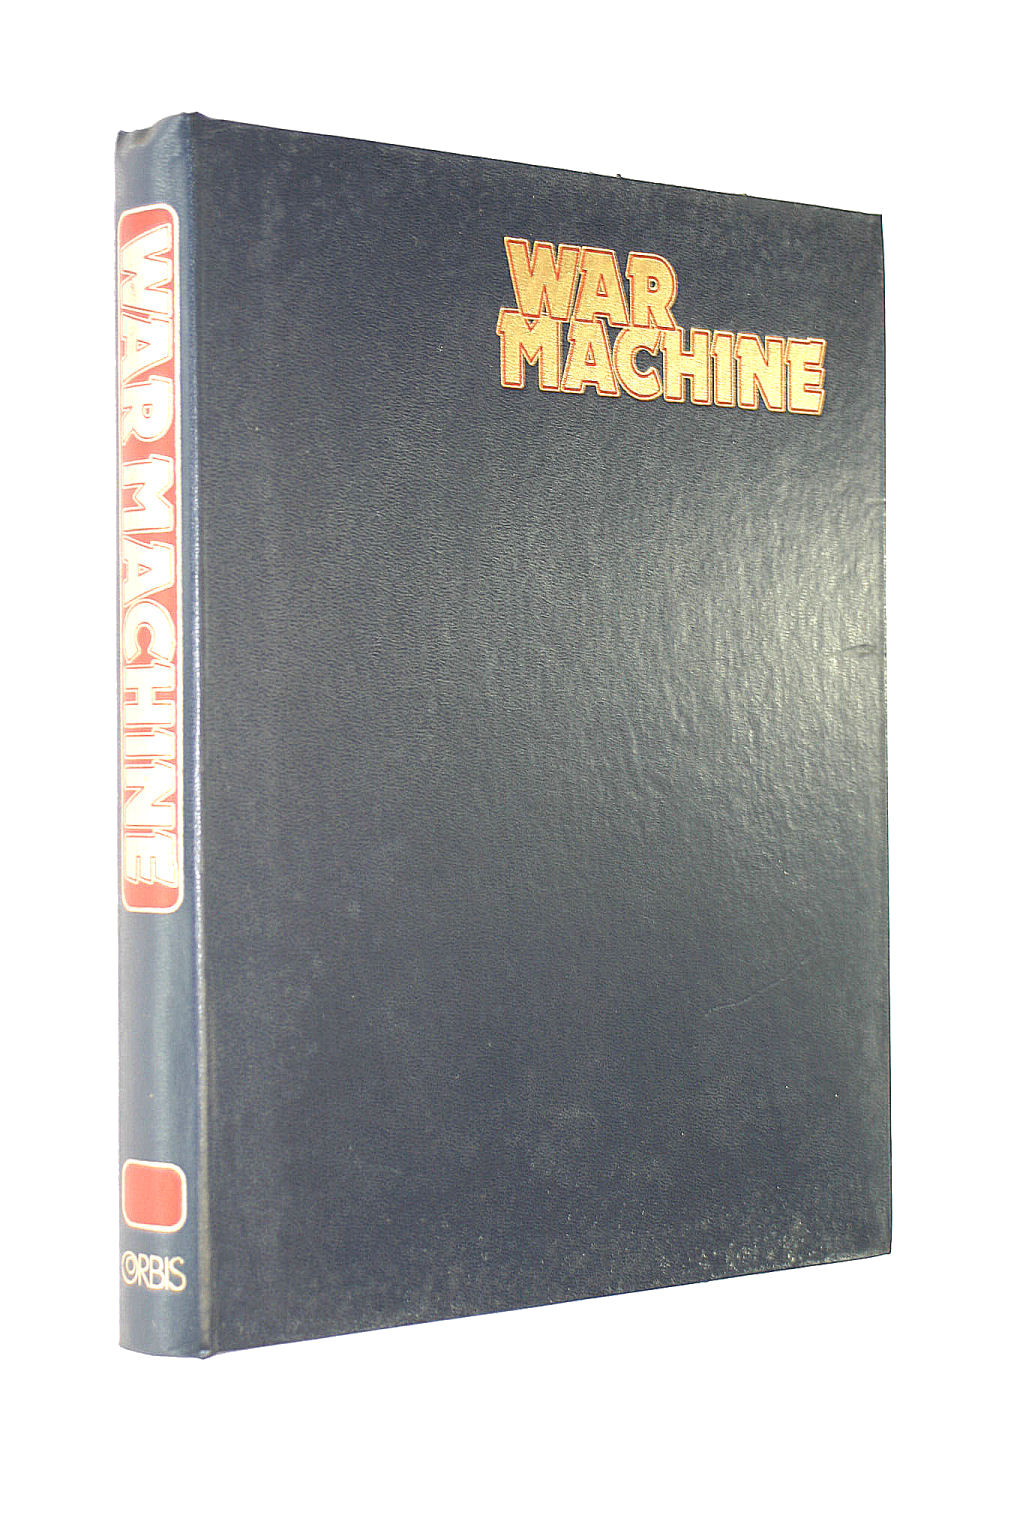 Image for War Machine Volume 1 Issues 1 to 12 and Vol 2 issues 13 to 14